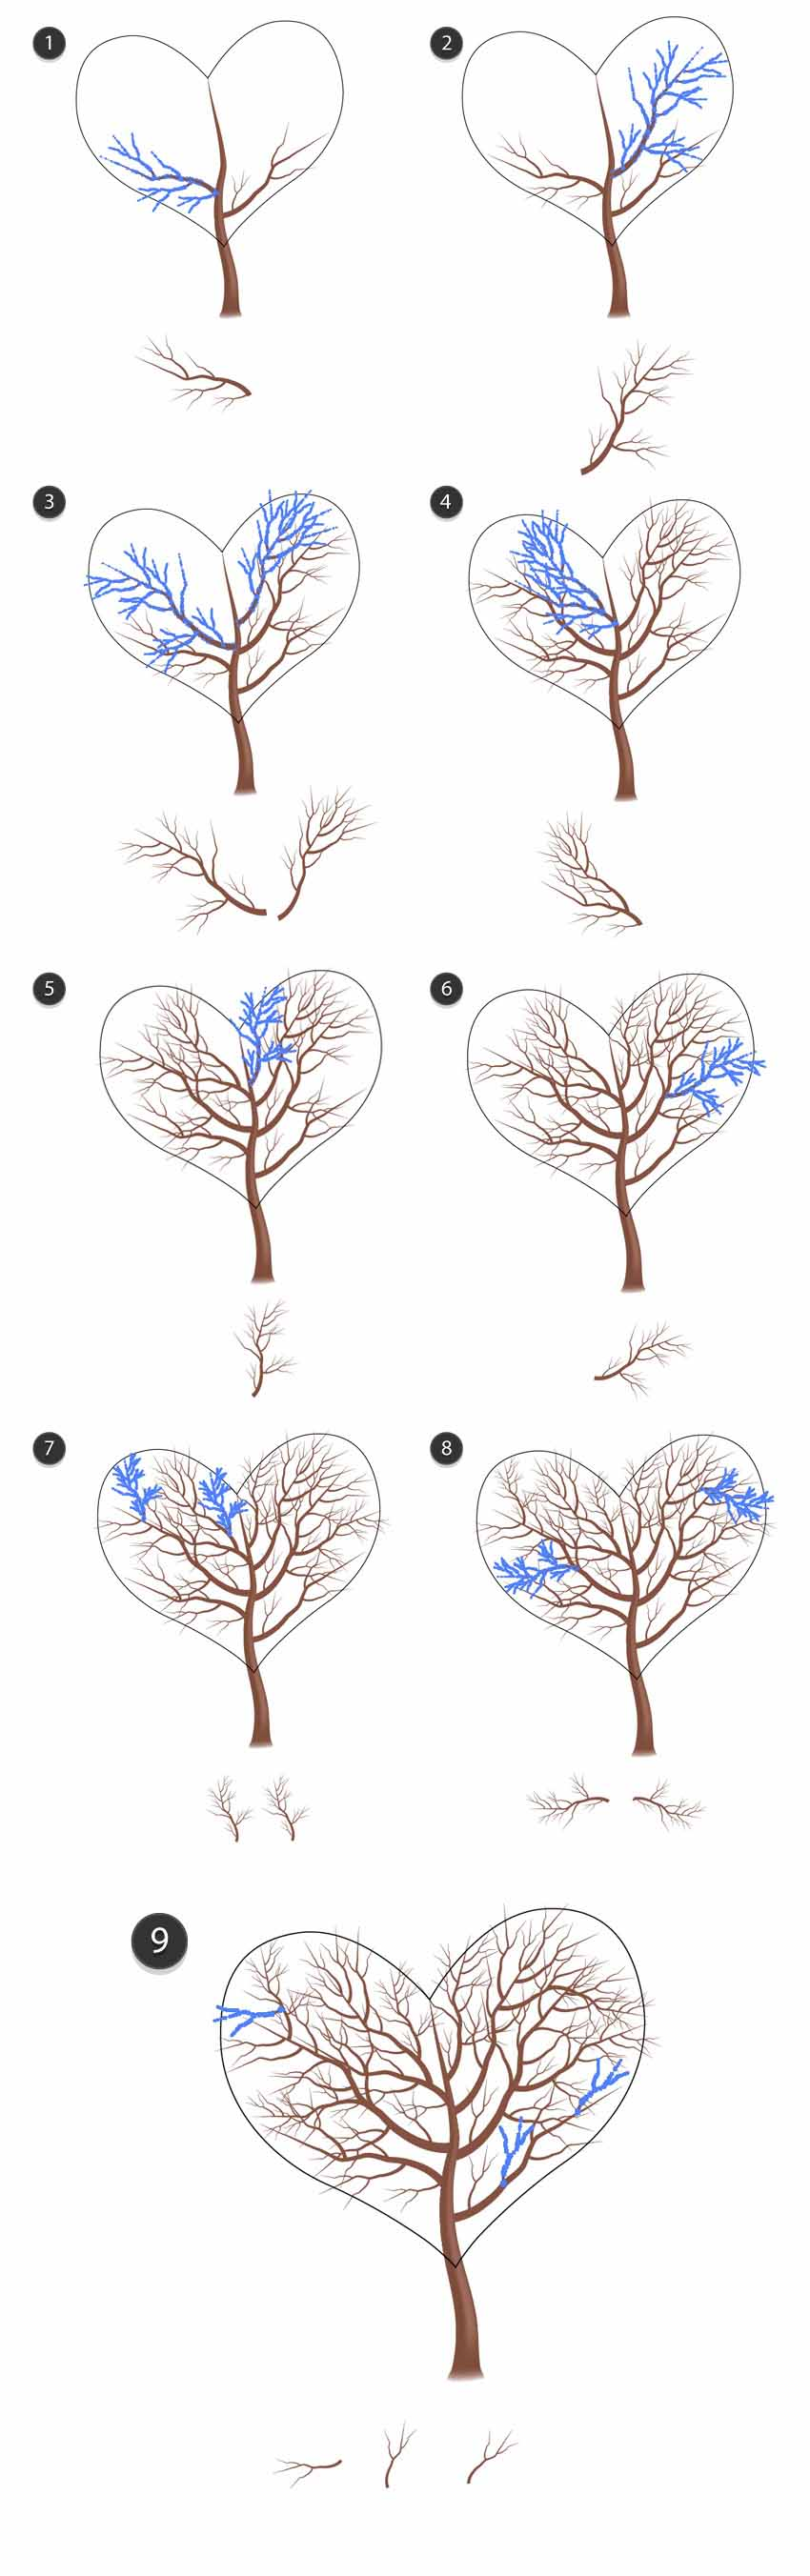 Complete the tree with different branches following the heart shape